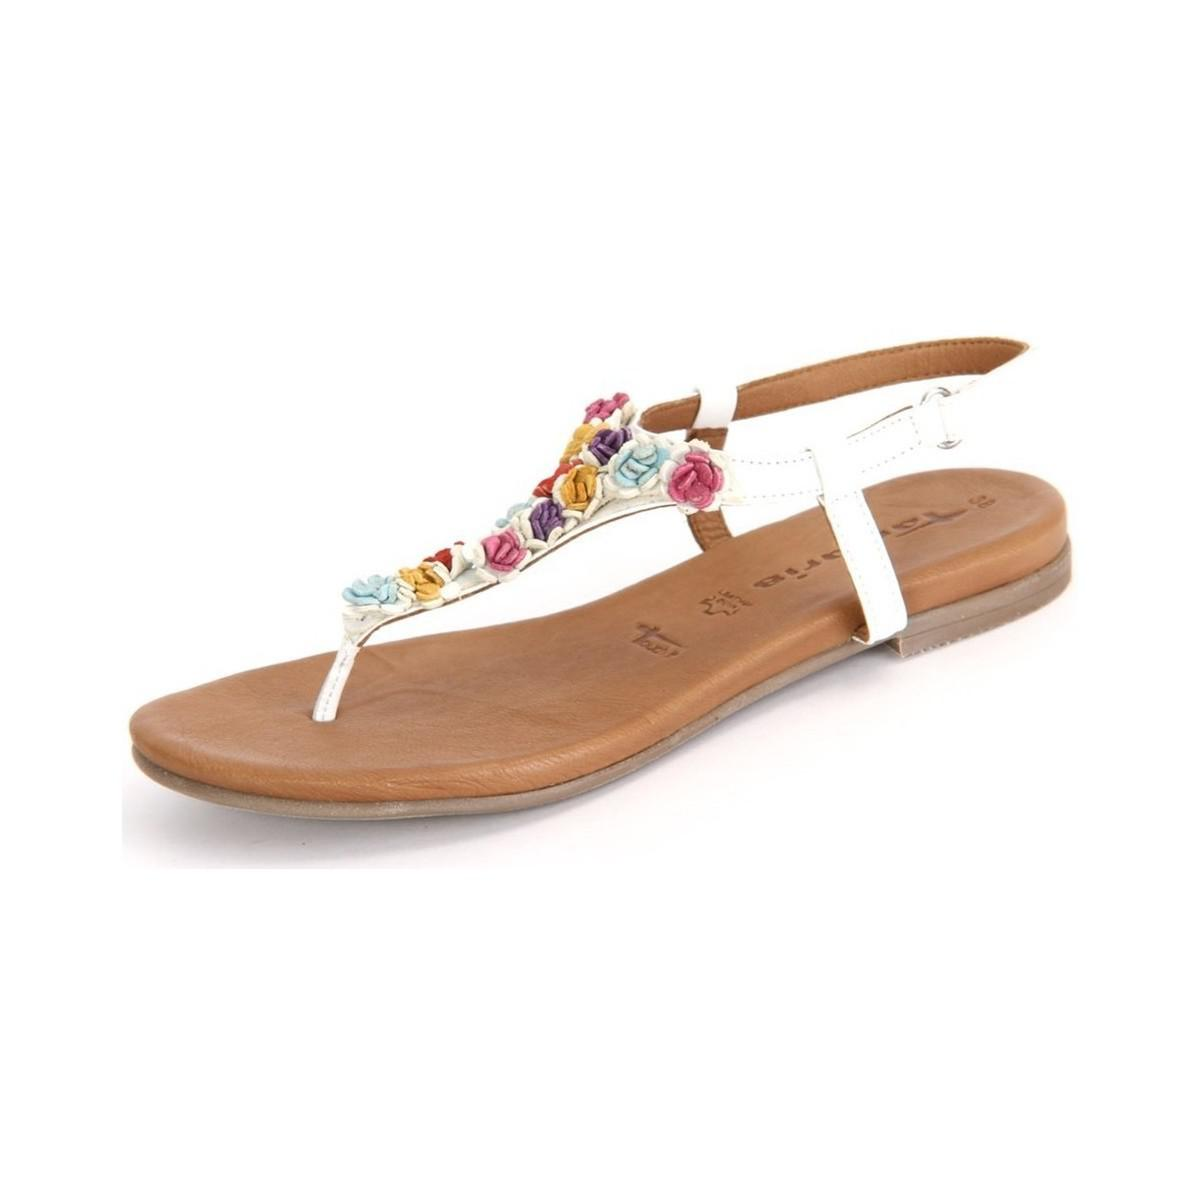 Lyst White Tamaris Combi Leather Women's In Multicolour Sandals 2IEDWHY9